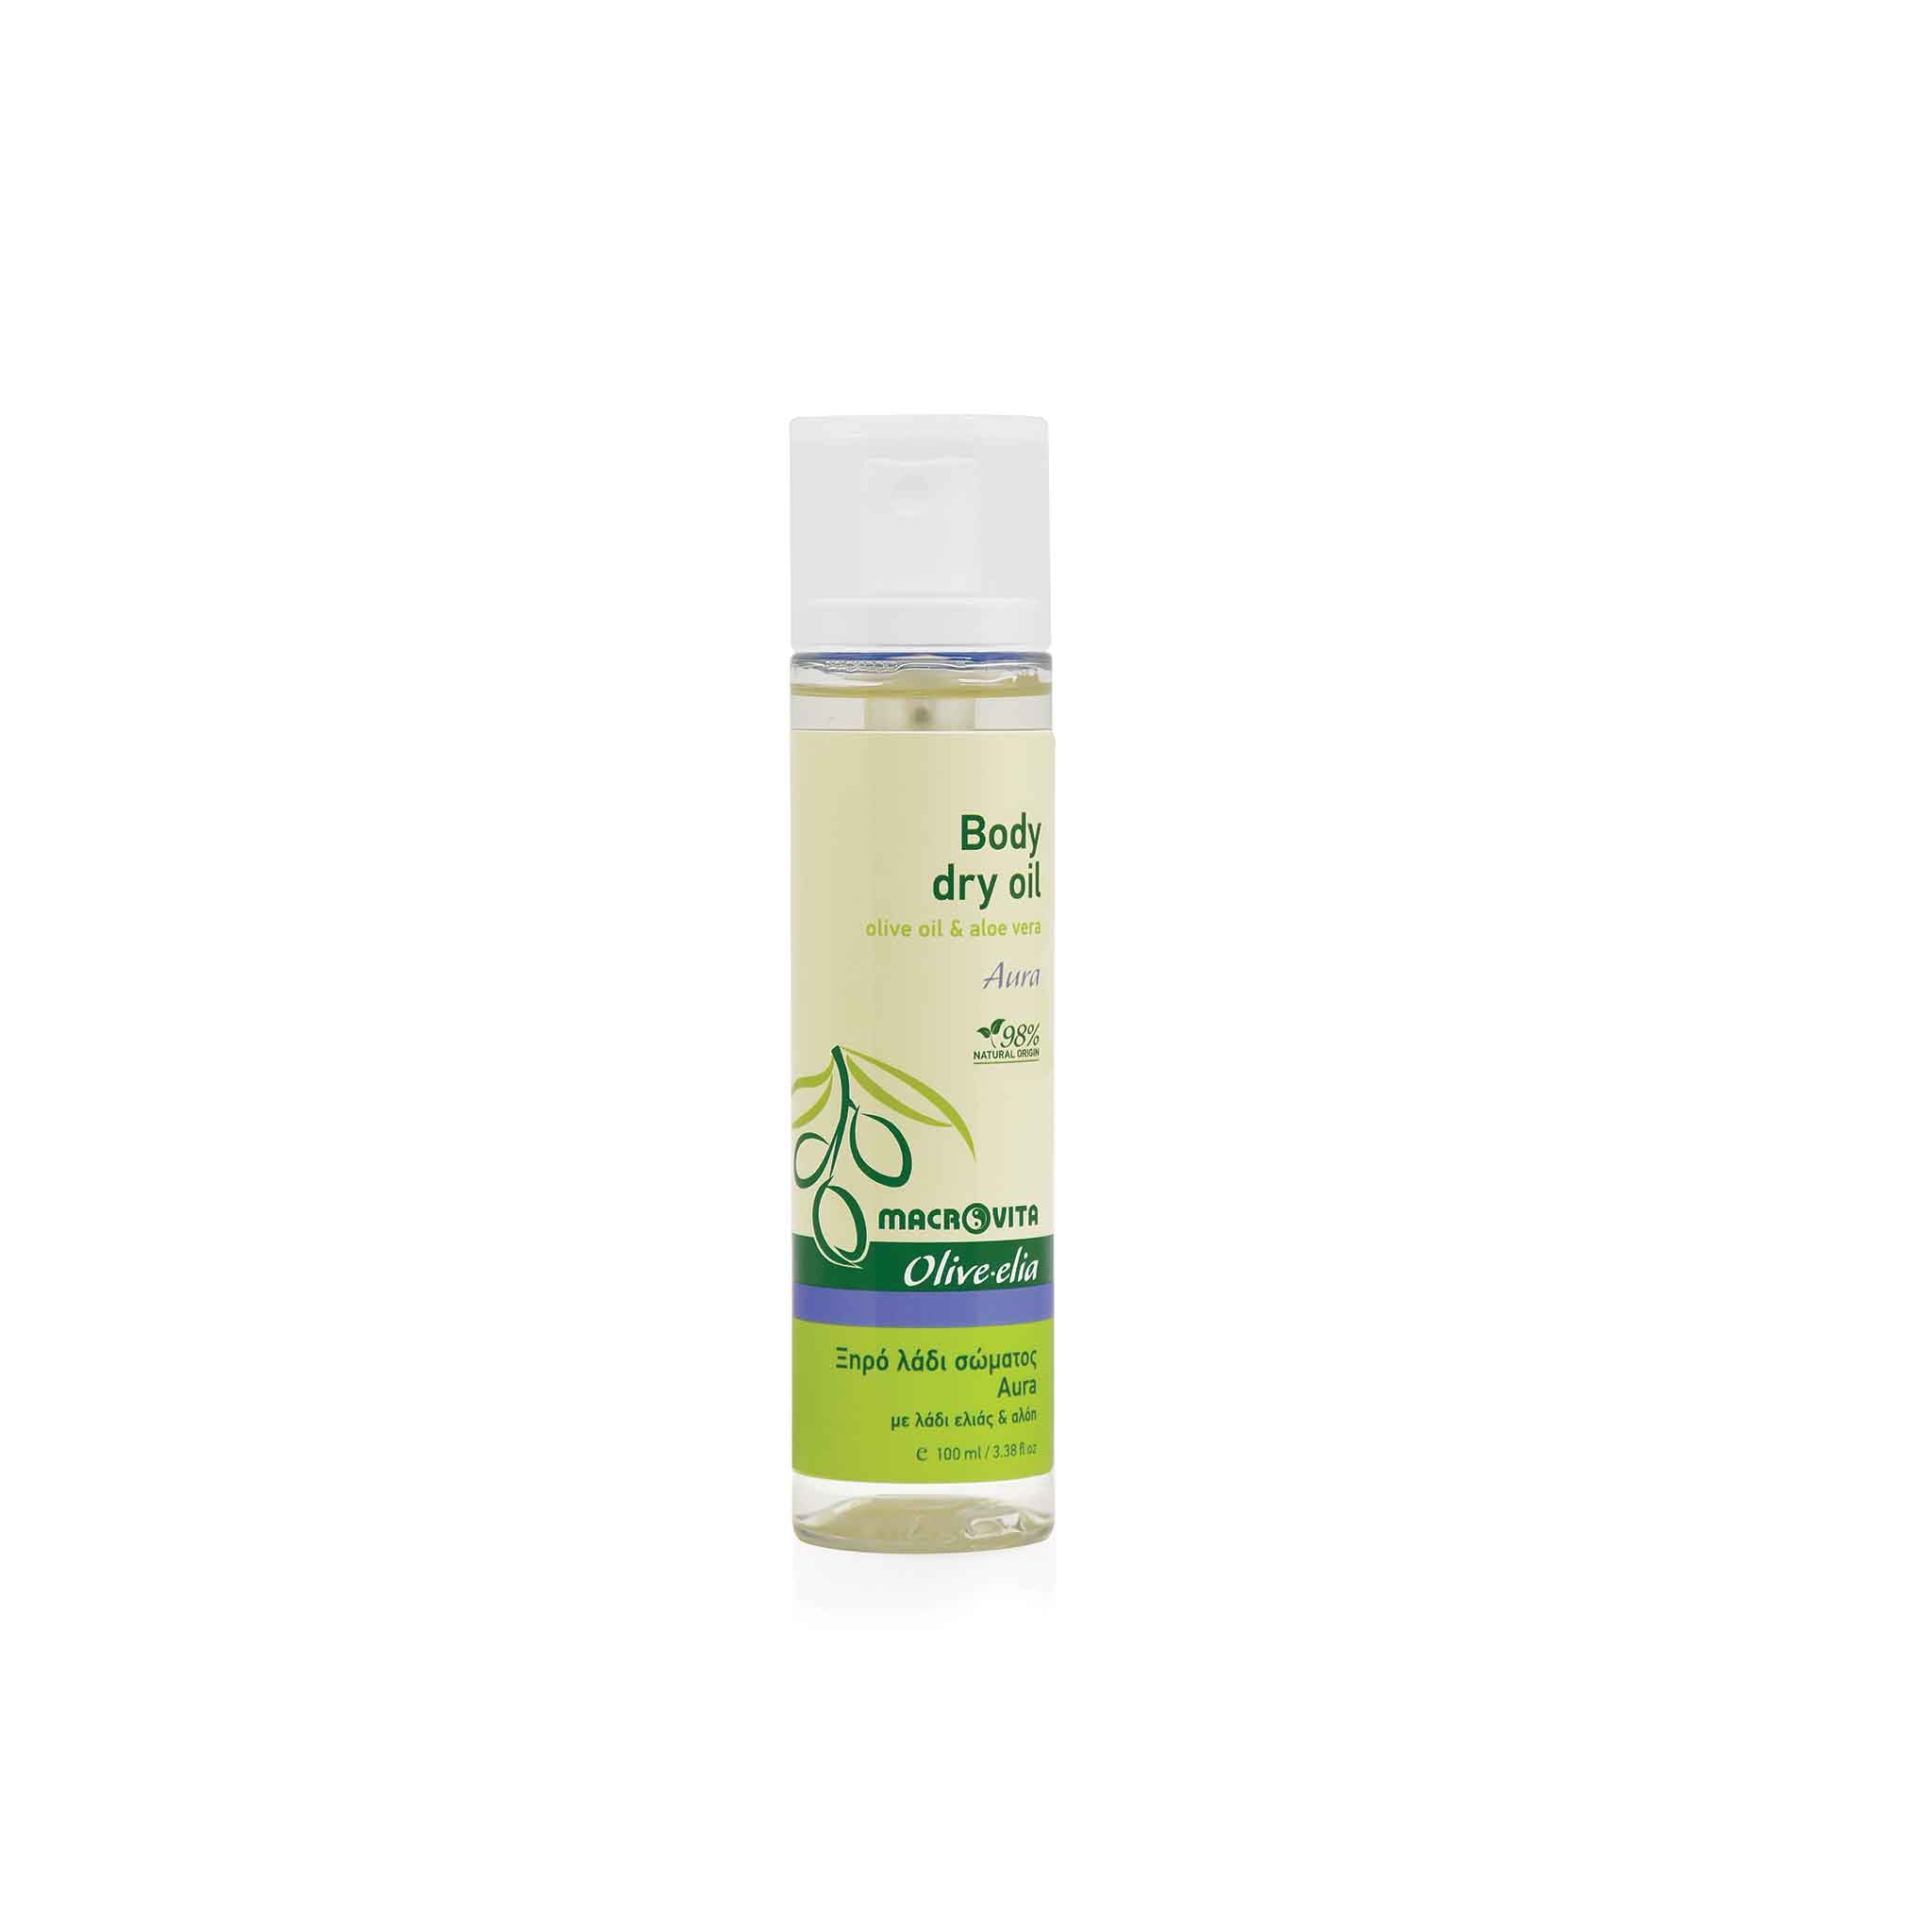 OLIVELIA AURA BODY DRY OIL